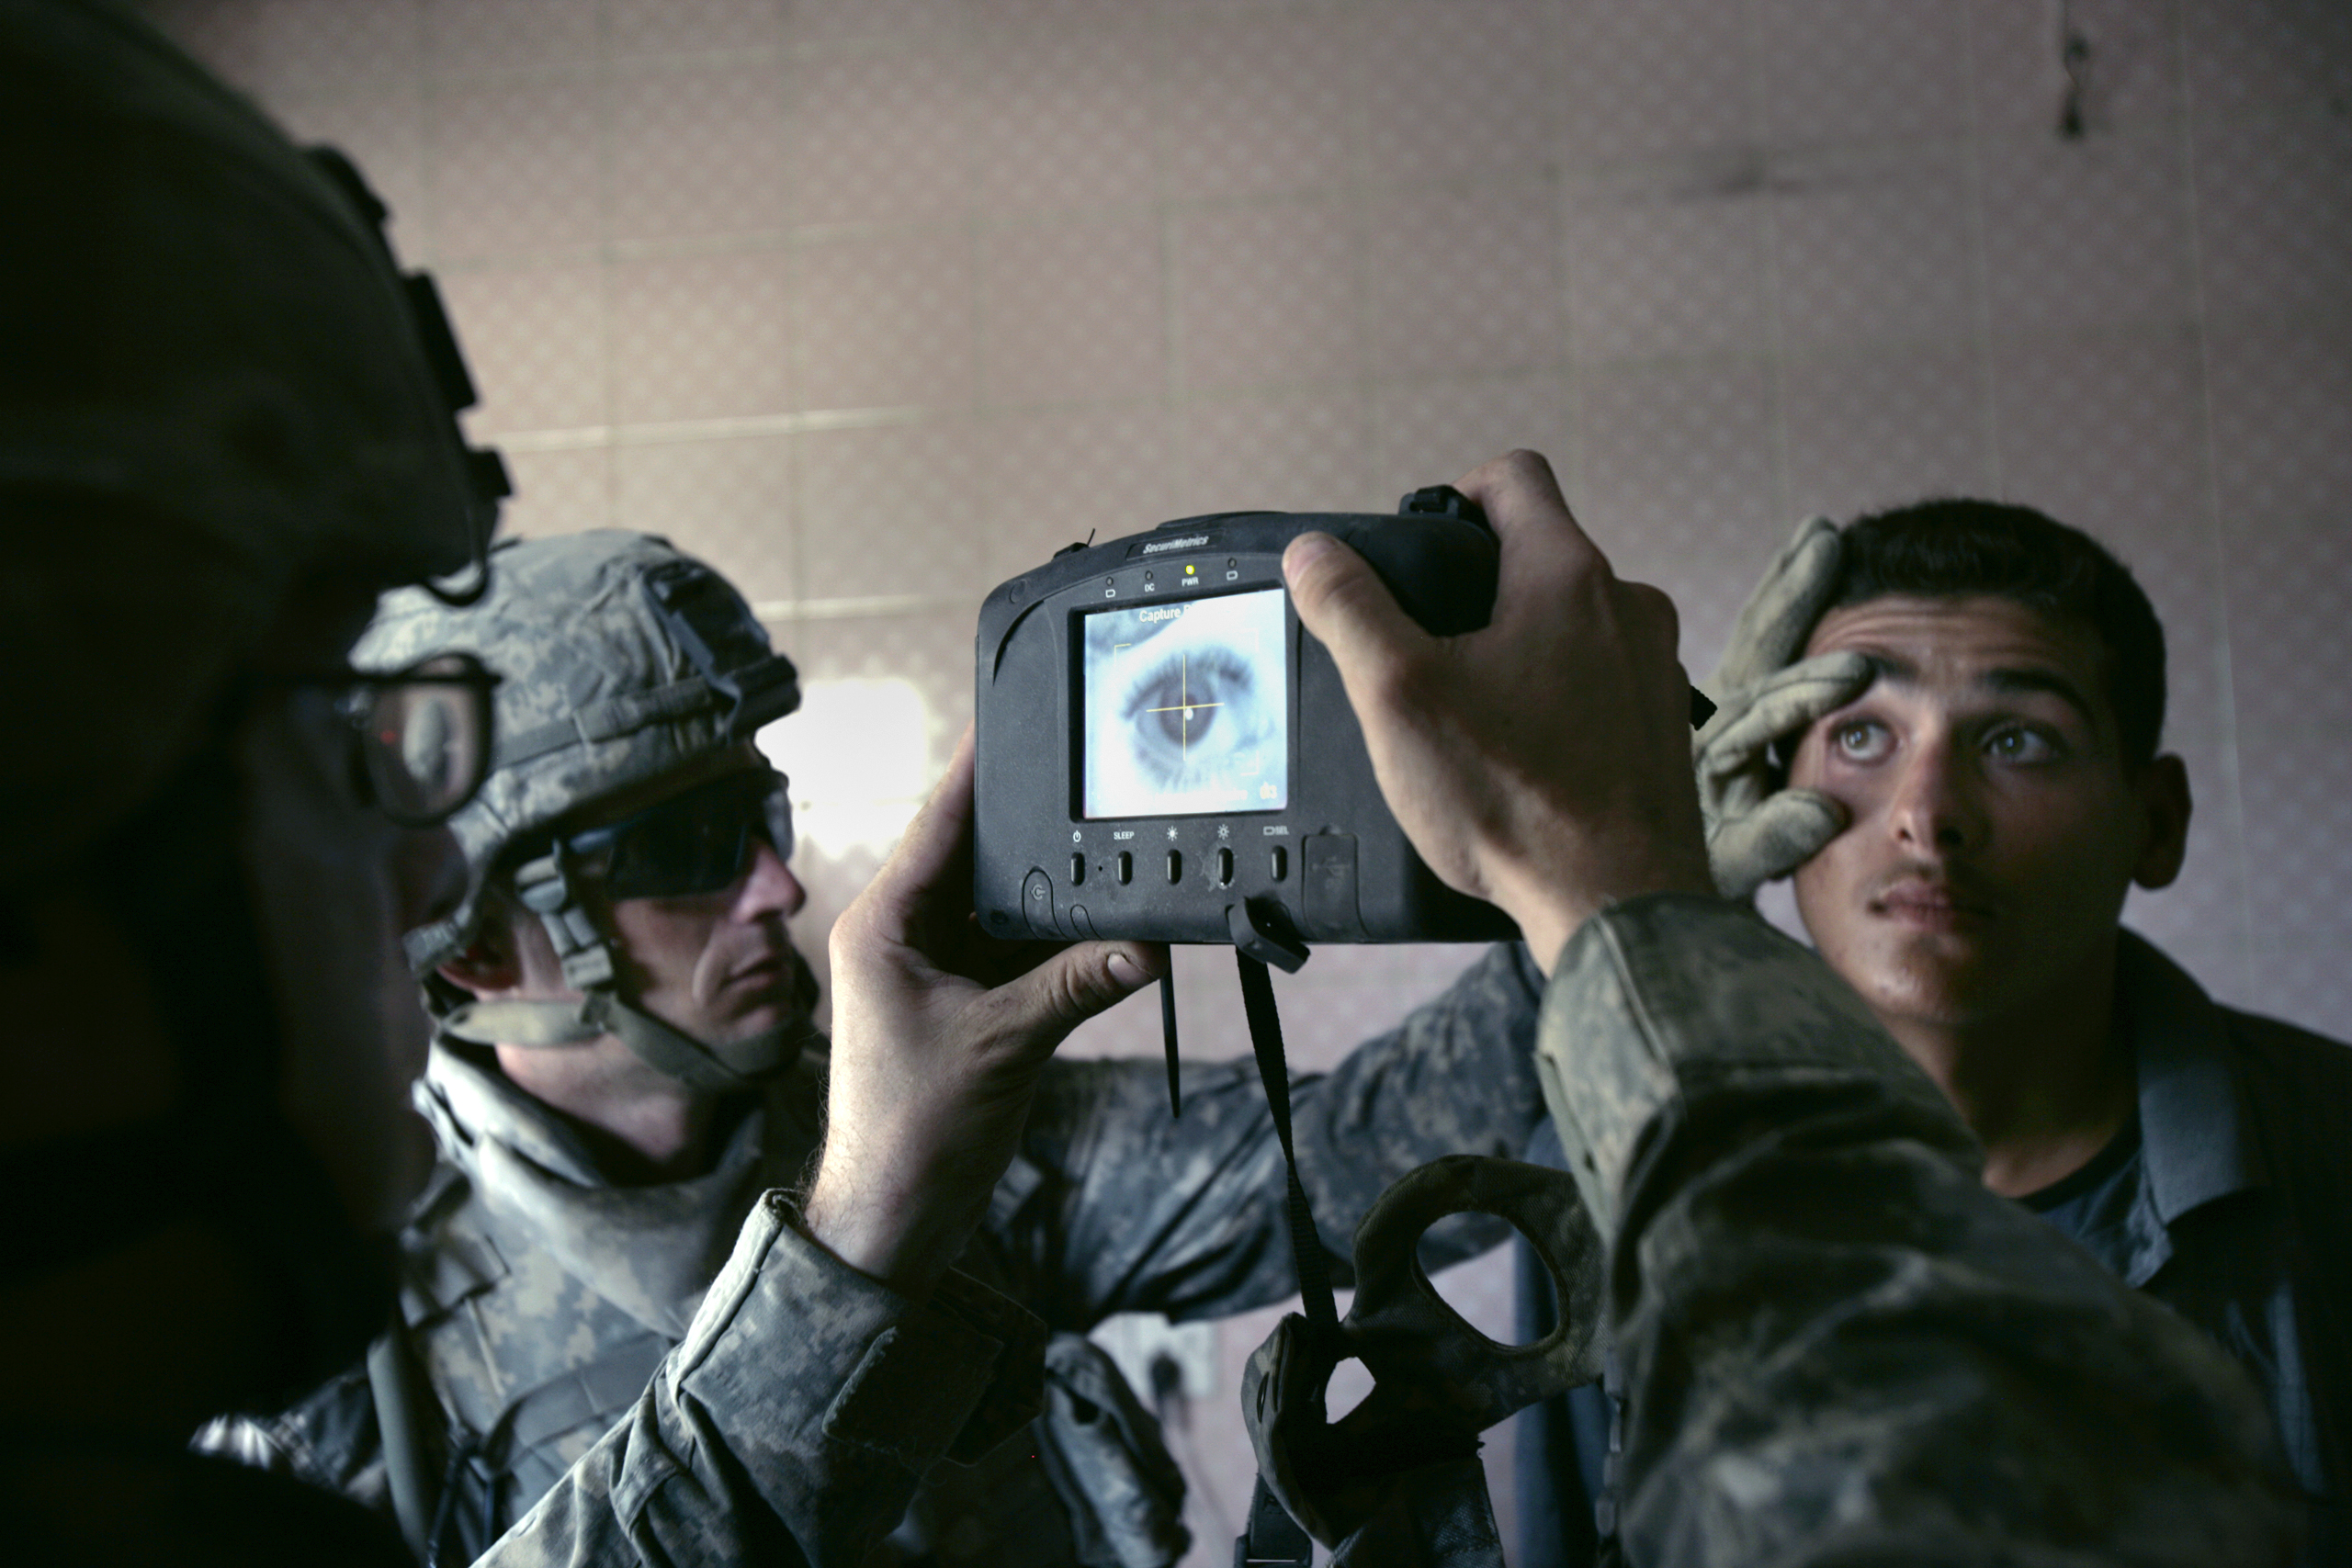 A U.S. Army soldier with 1st Battalion, 5th Cavalry Regiment, 2nd Brigade, 1st Cavalry Division scans an Iraqi man's eye during a census operation in the Amariyah neighborhood of west Baghdad, Aug. 5, 2007. The  American soldiers try to take the name, address and  biometrics  of each Iraqi man they meet during searching the houses.